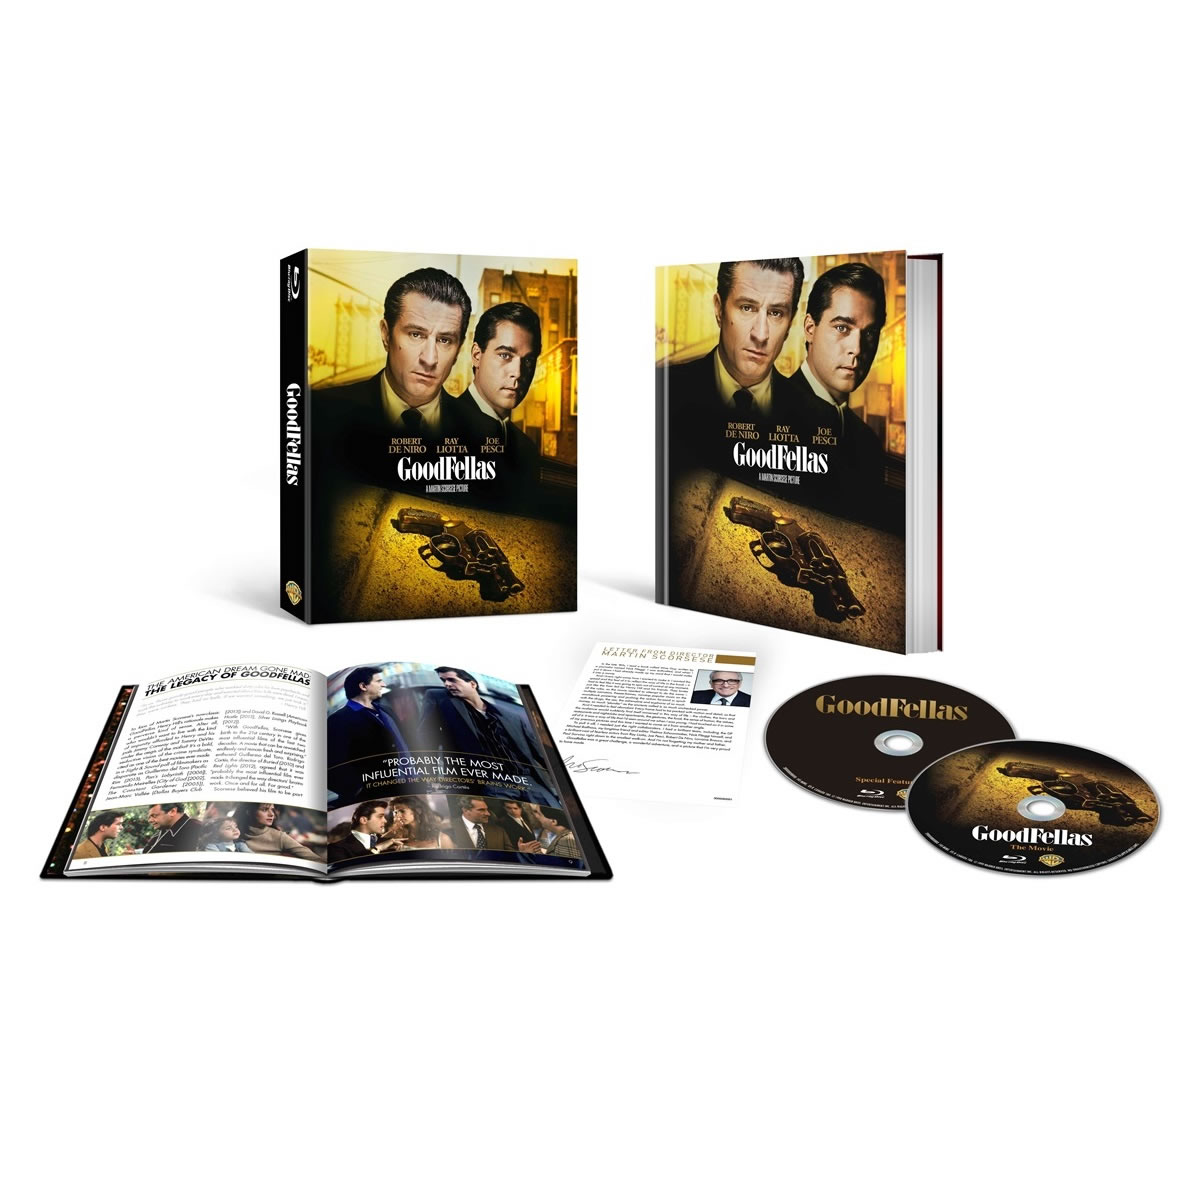 GOODFELLAS [4K ReMASTERED] 25th Anniversary - �� ���� ������ [4K ReMASTERED] ��������� ������ 25 ������ - Limited Collector's Edition (2 BLU-RAYs)